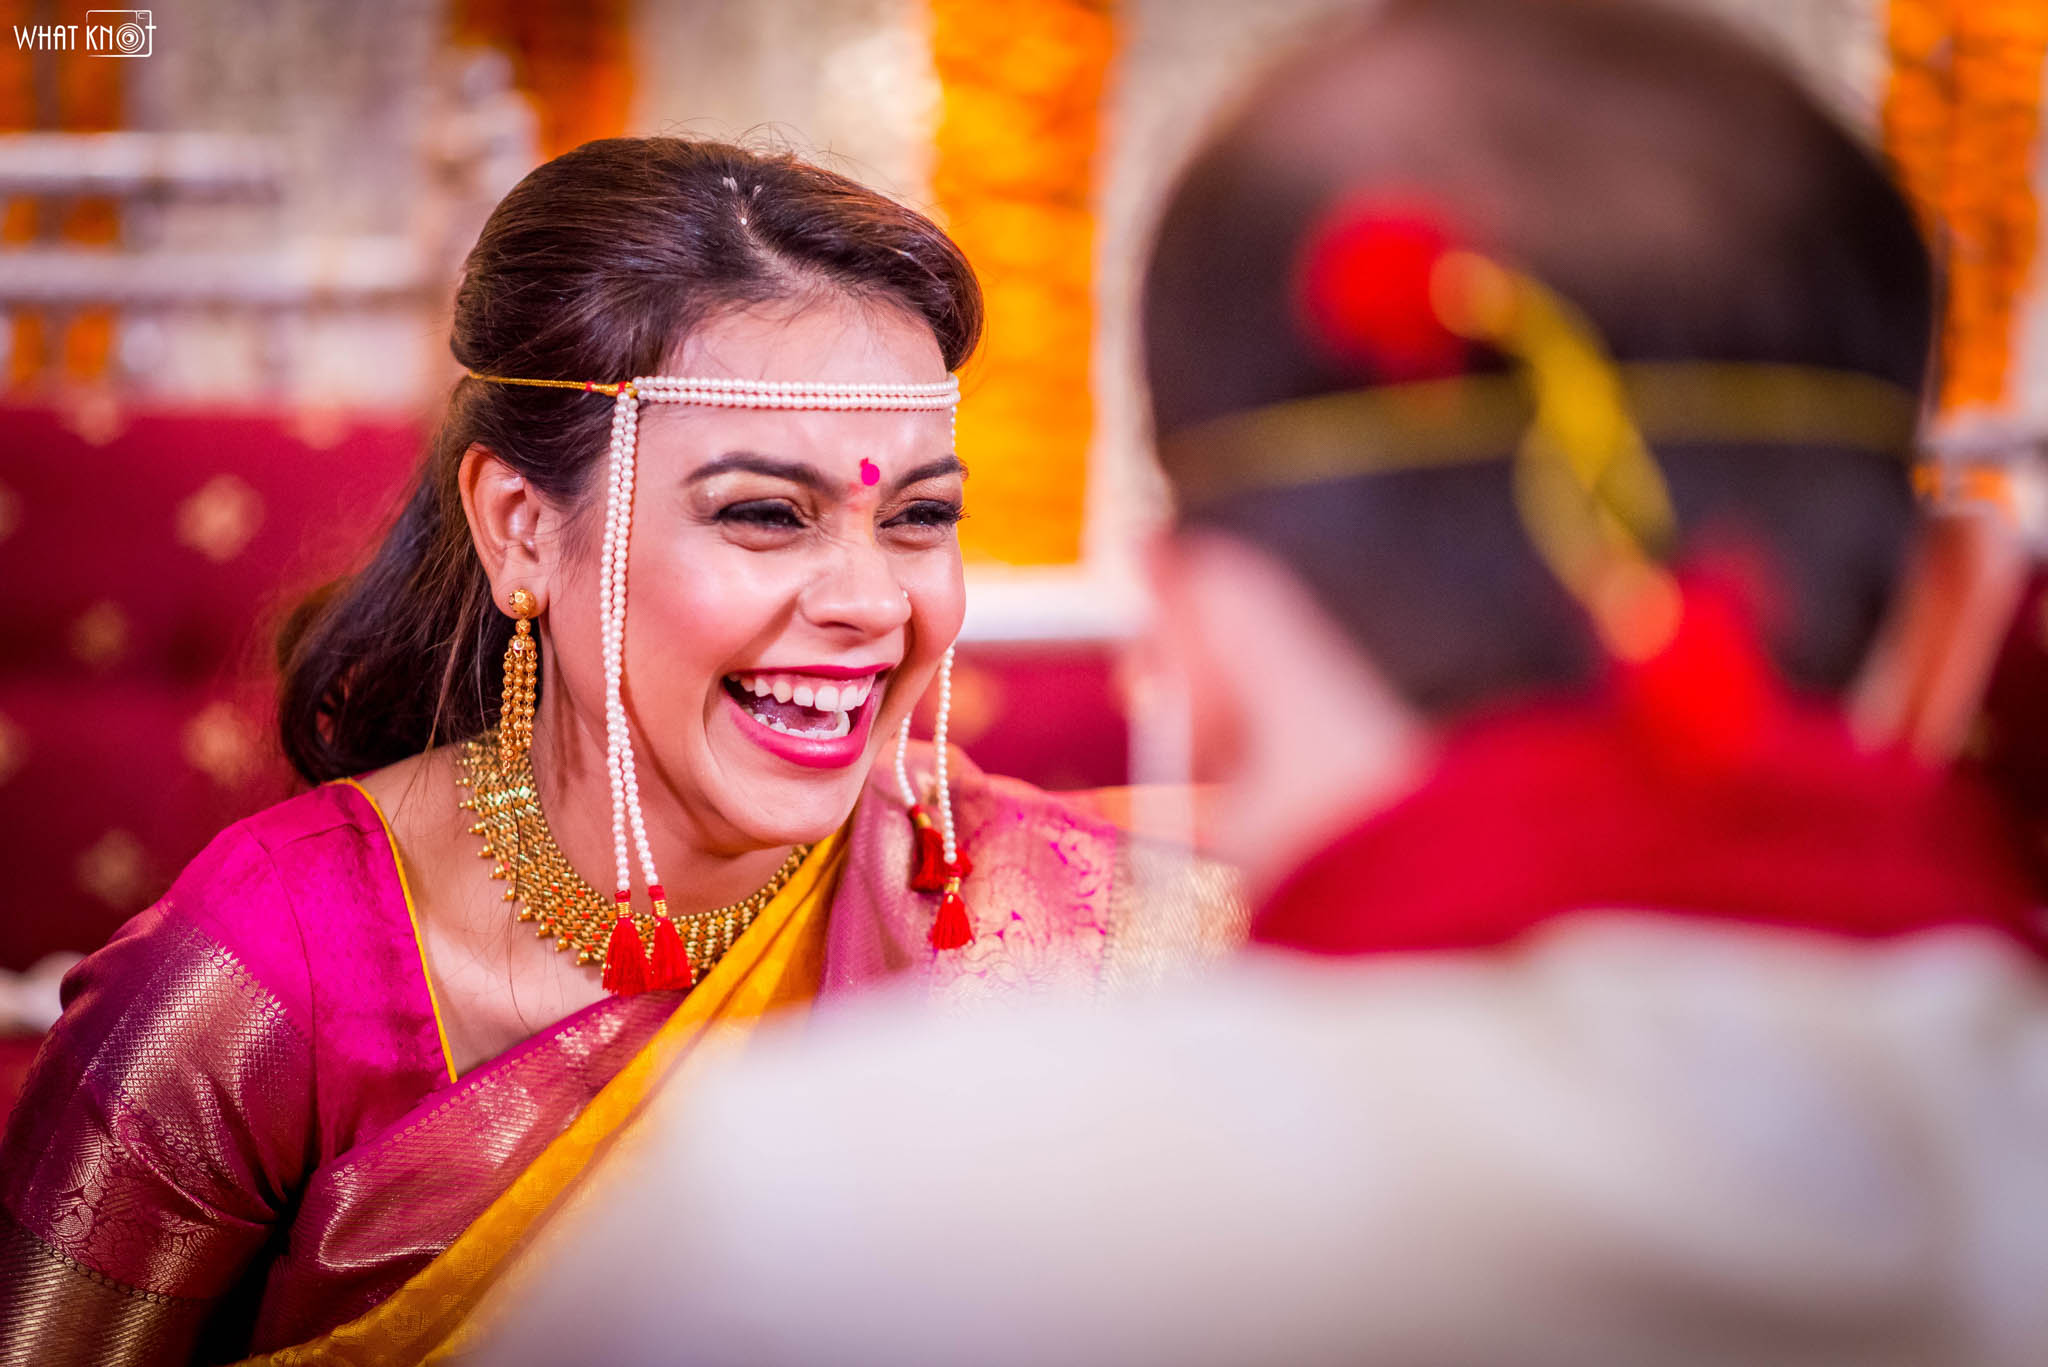 Candid-Wedding-Photography-WhatKnot-Marathi-112